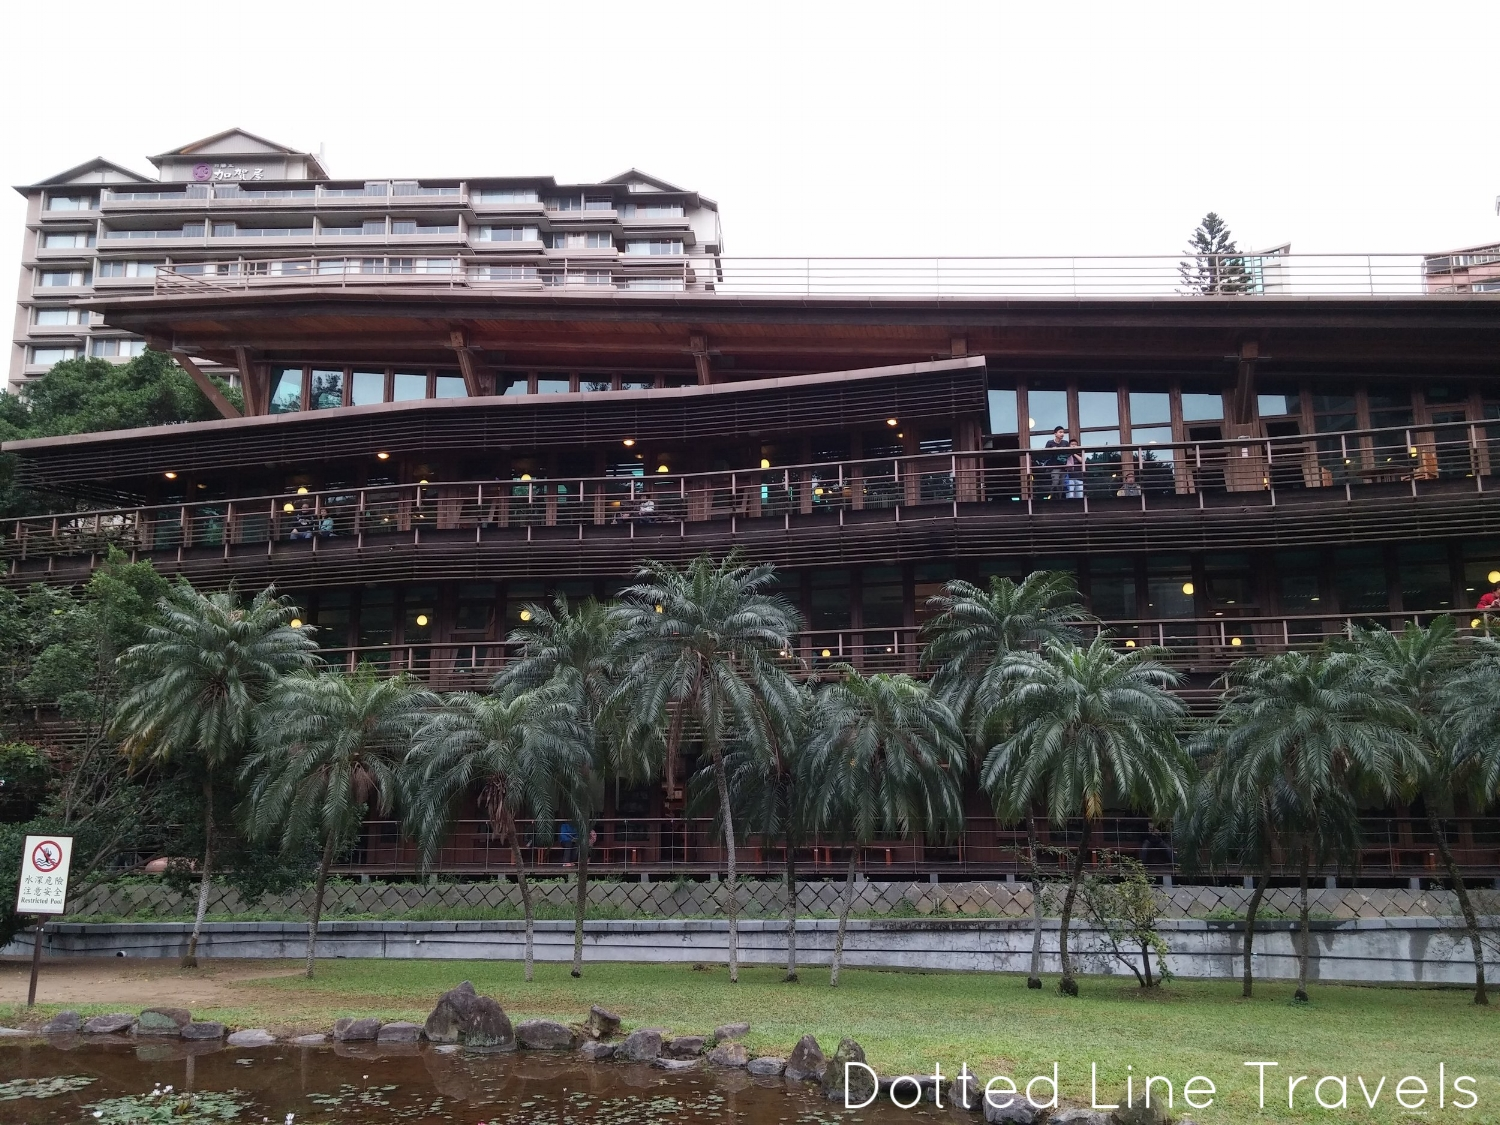 Beitou Public Library, located next to the Beitou Hot Spring Museum